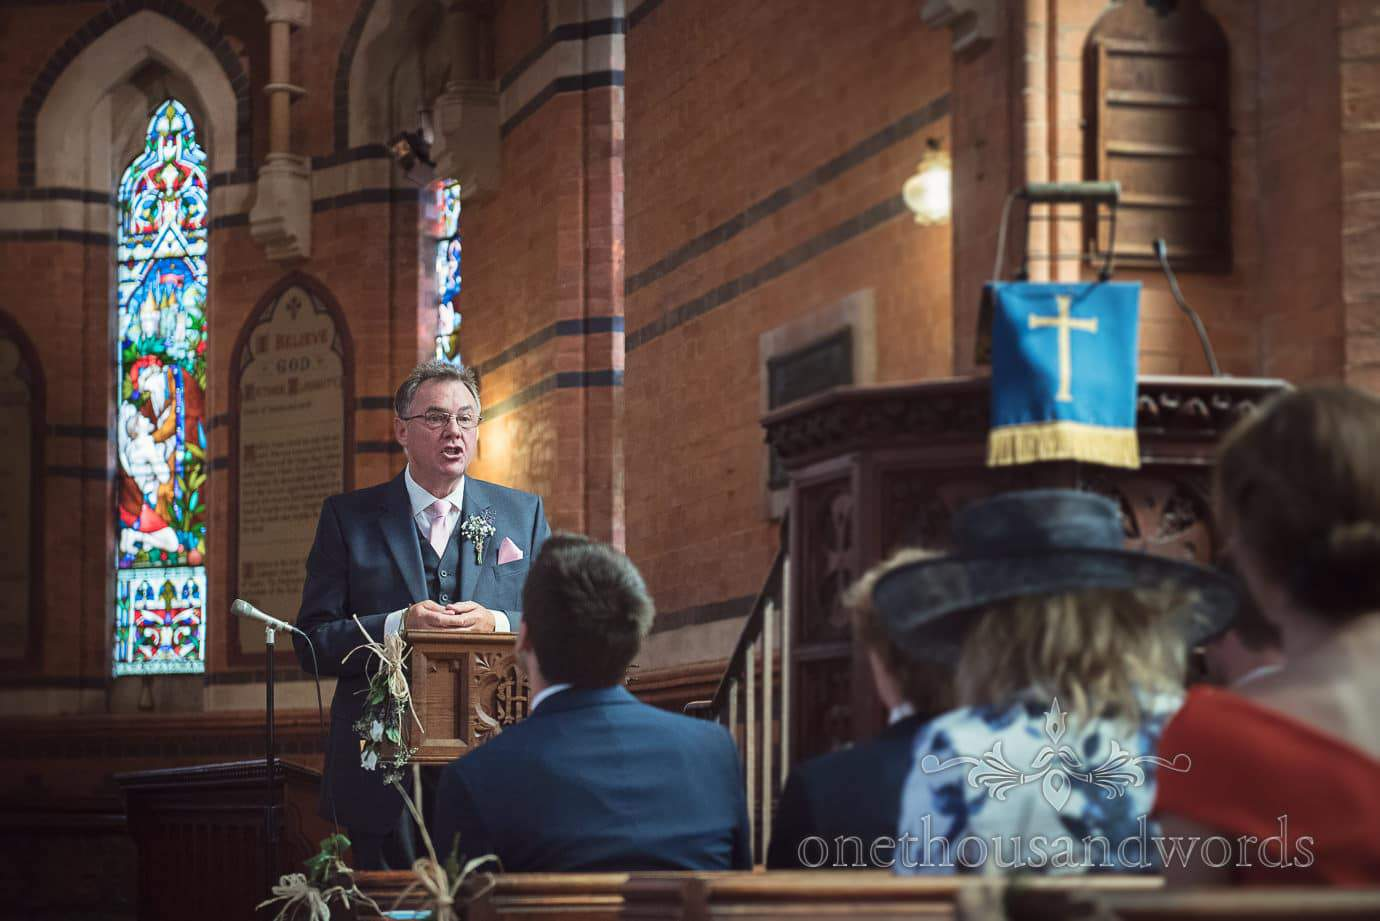 Father of the bride gives wedding reading in red brick church wedding ceremony